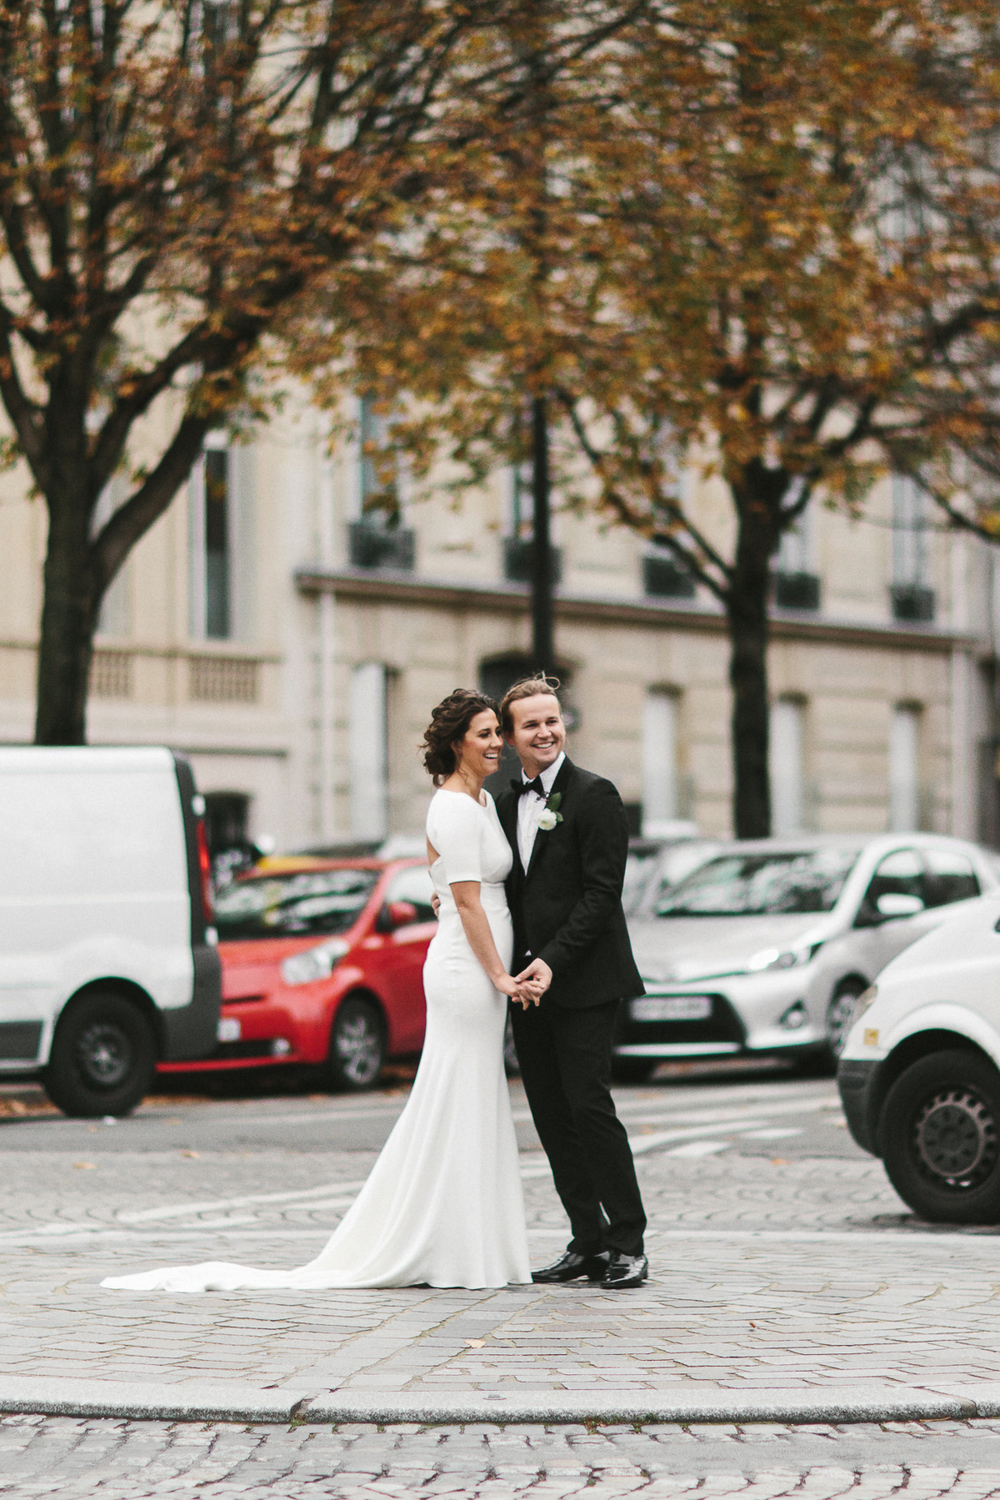 Paris Wedding Photographer Someplace Wild-104.jpg